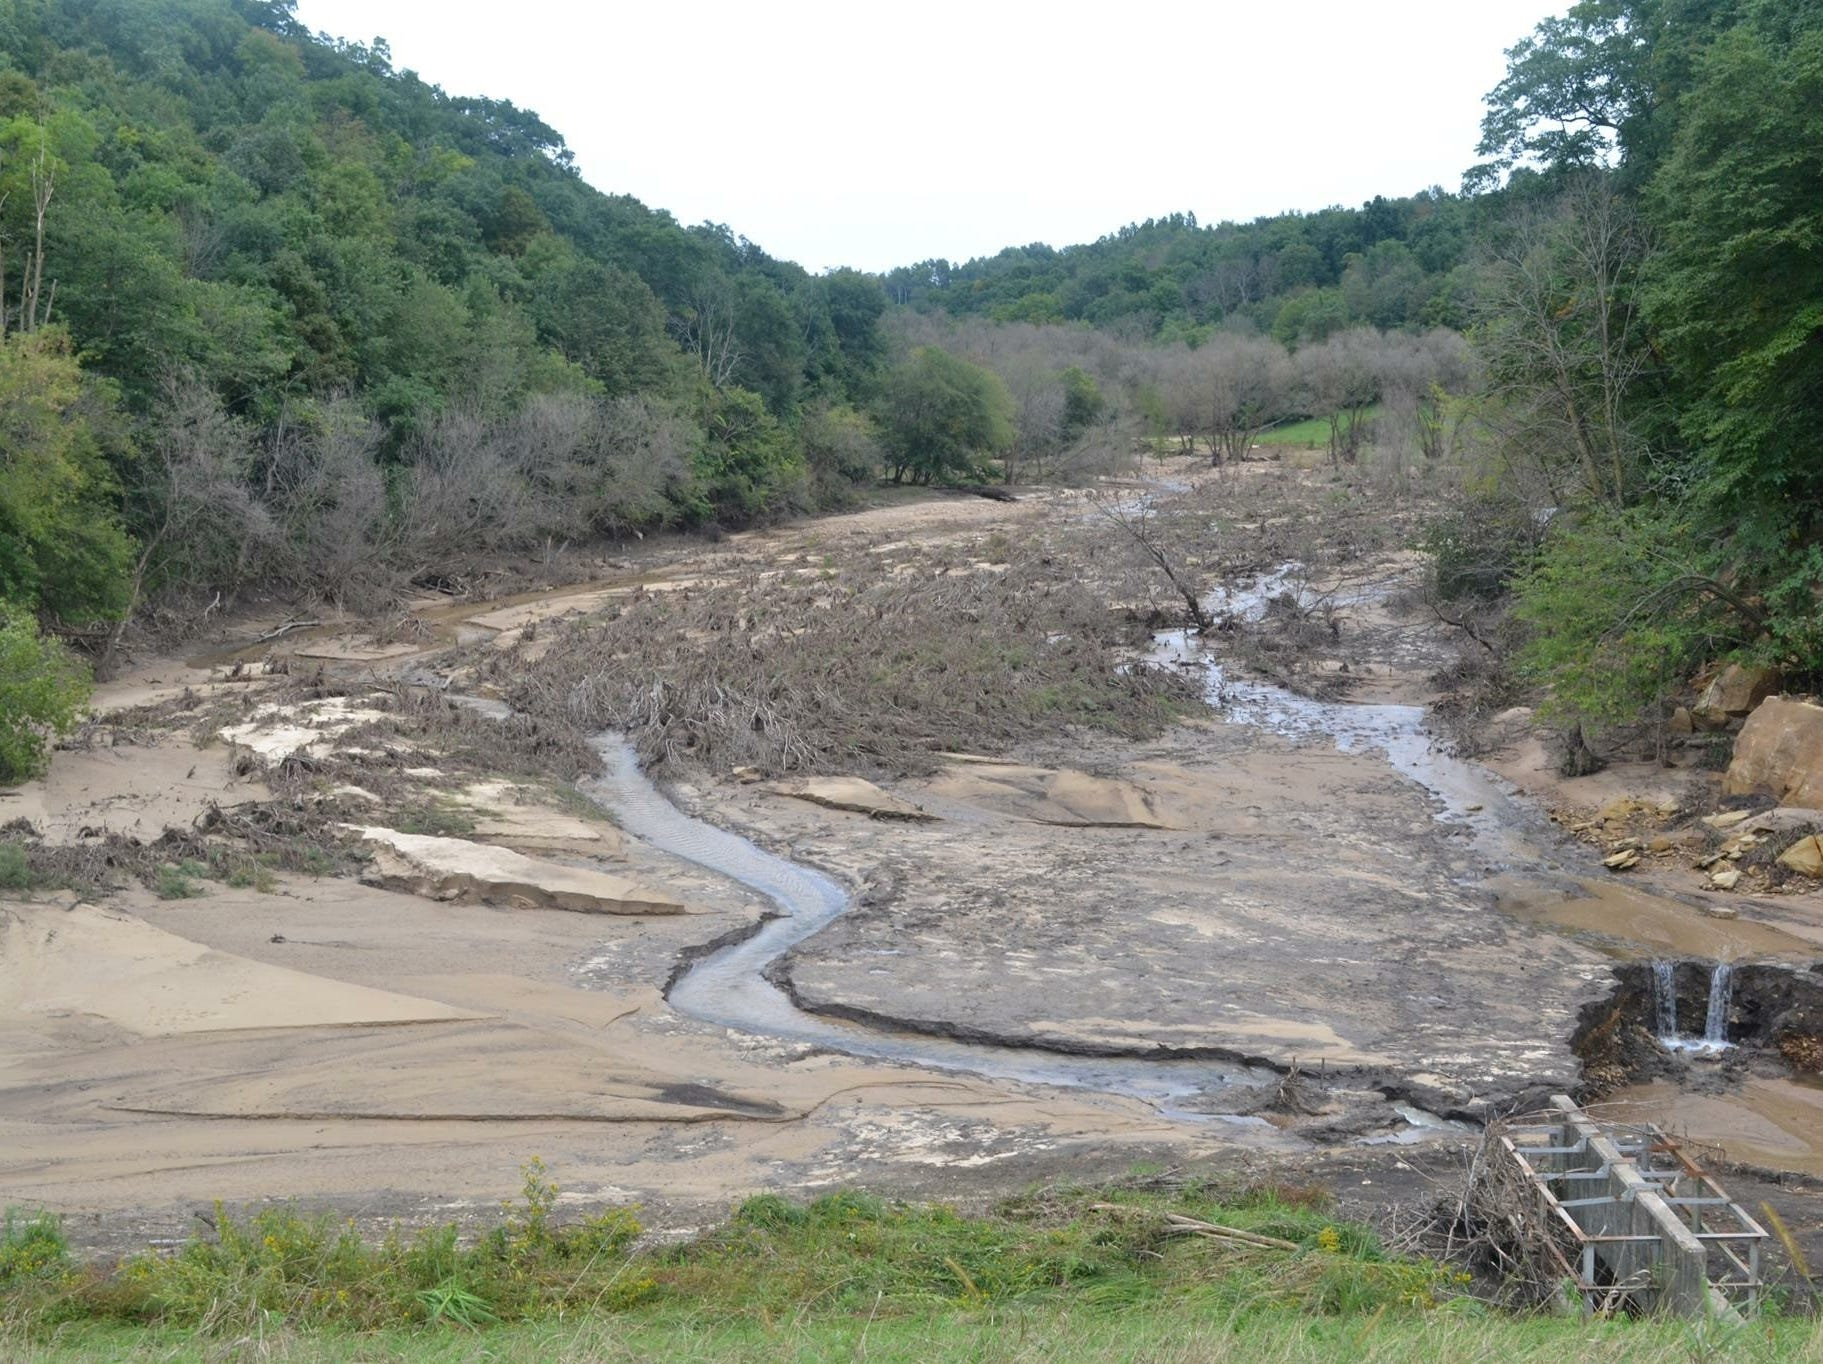 Looking from the top of the remaining dam, toward the area where the water accumulated before the dam failure. Those are trees laid flat by the immense, sudden outflow. This area was full of rain water all the way back to the gray trees in the center distance, at depths about 50 feet.